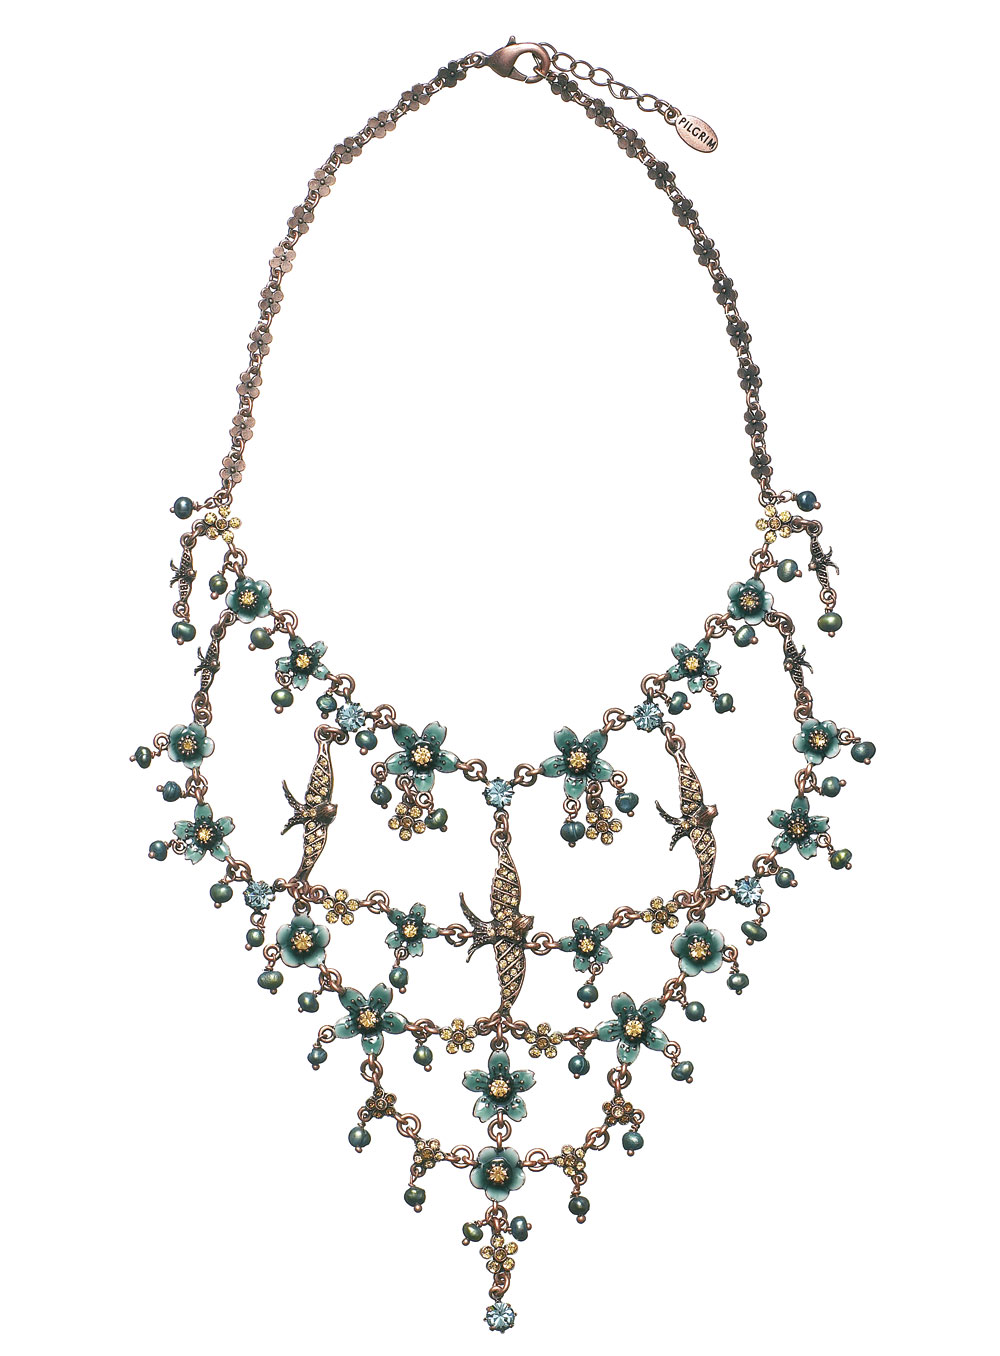 Elaborate Swallow & Flower Pilgrim Necklace Teal/Topaz/Oxidised Copper